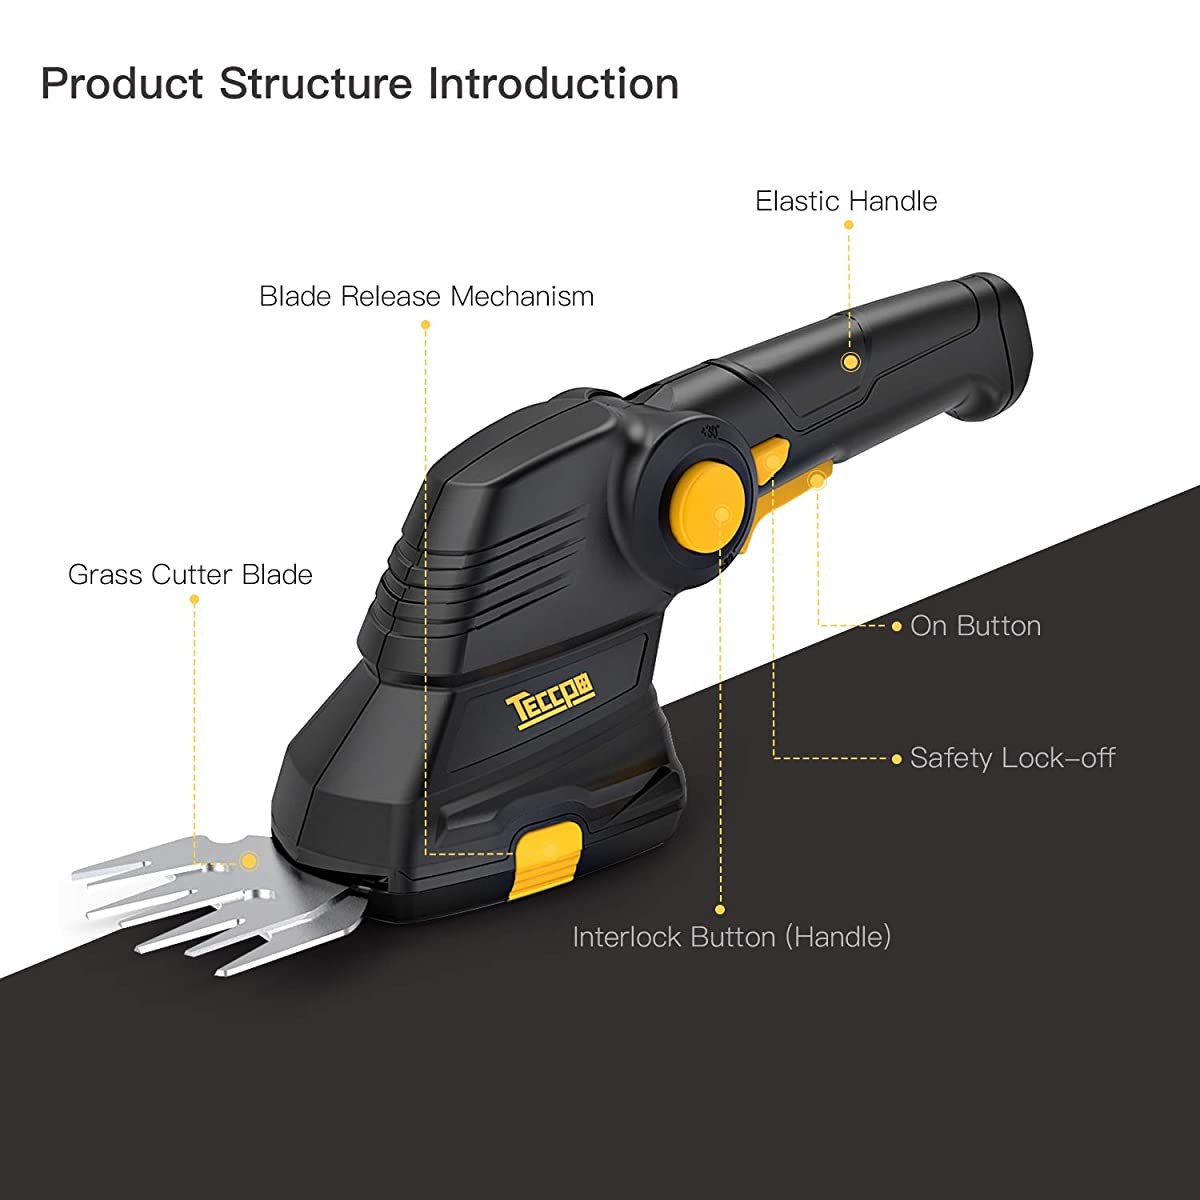 Grass Shears, TECCPO 3.6V Cordless Grass and Shrub Shears/Hedge Trimmer, 1.5Ah Rechargeable USB Lithium Battery 2 in 1 Fast Tool-Less Switch, with Pivoting Handle, Ideal for Garden - TDGS01G